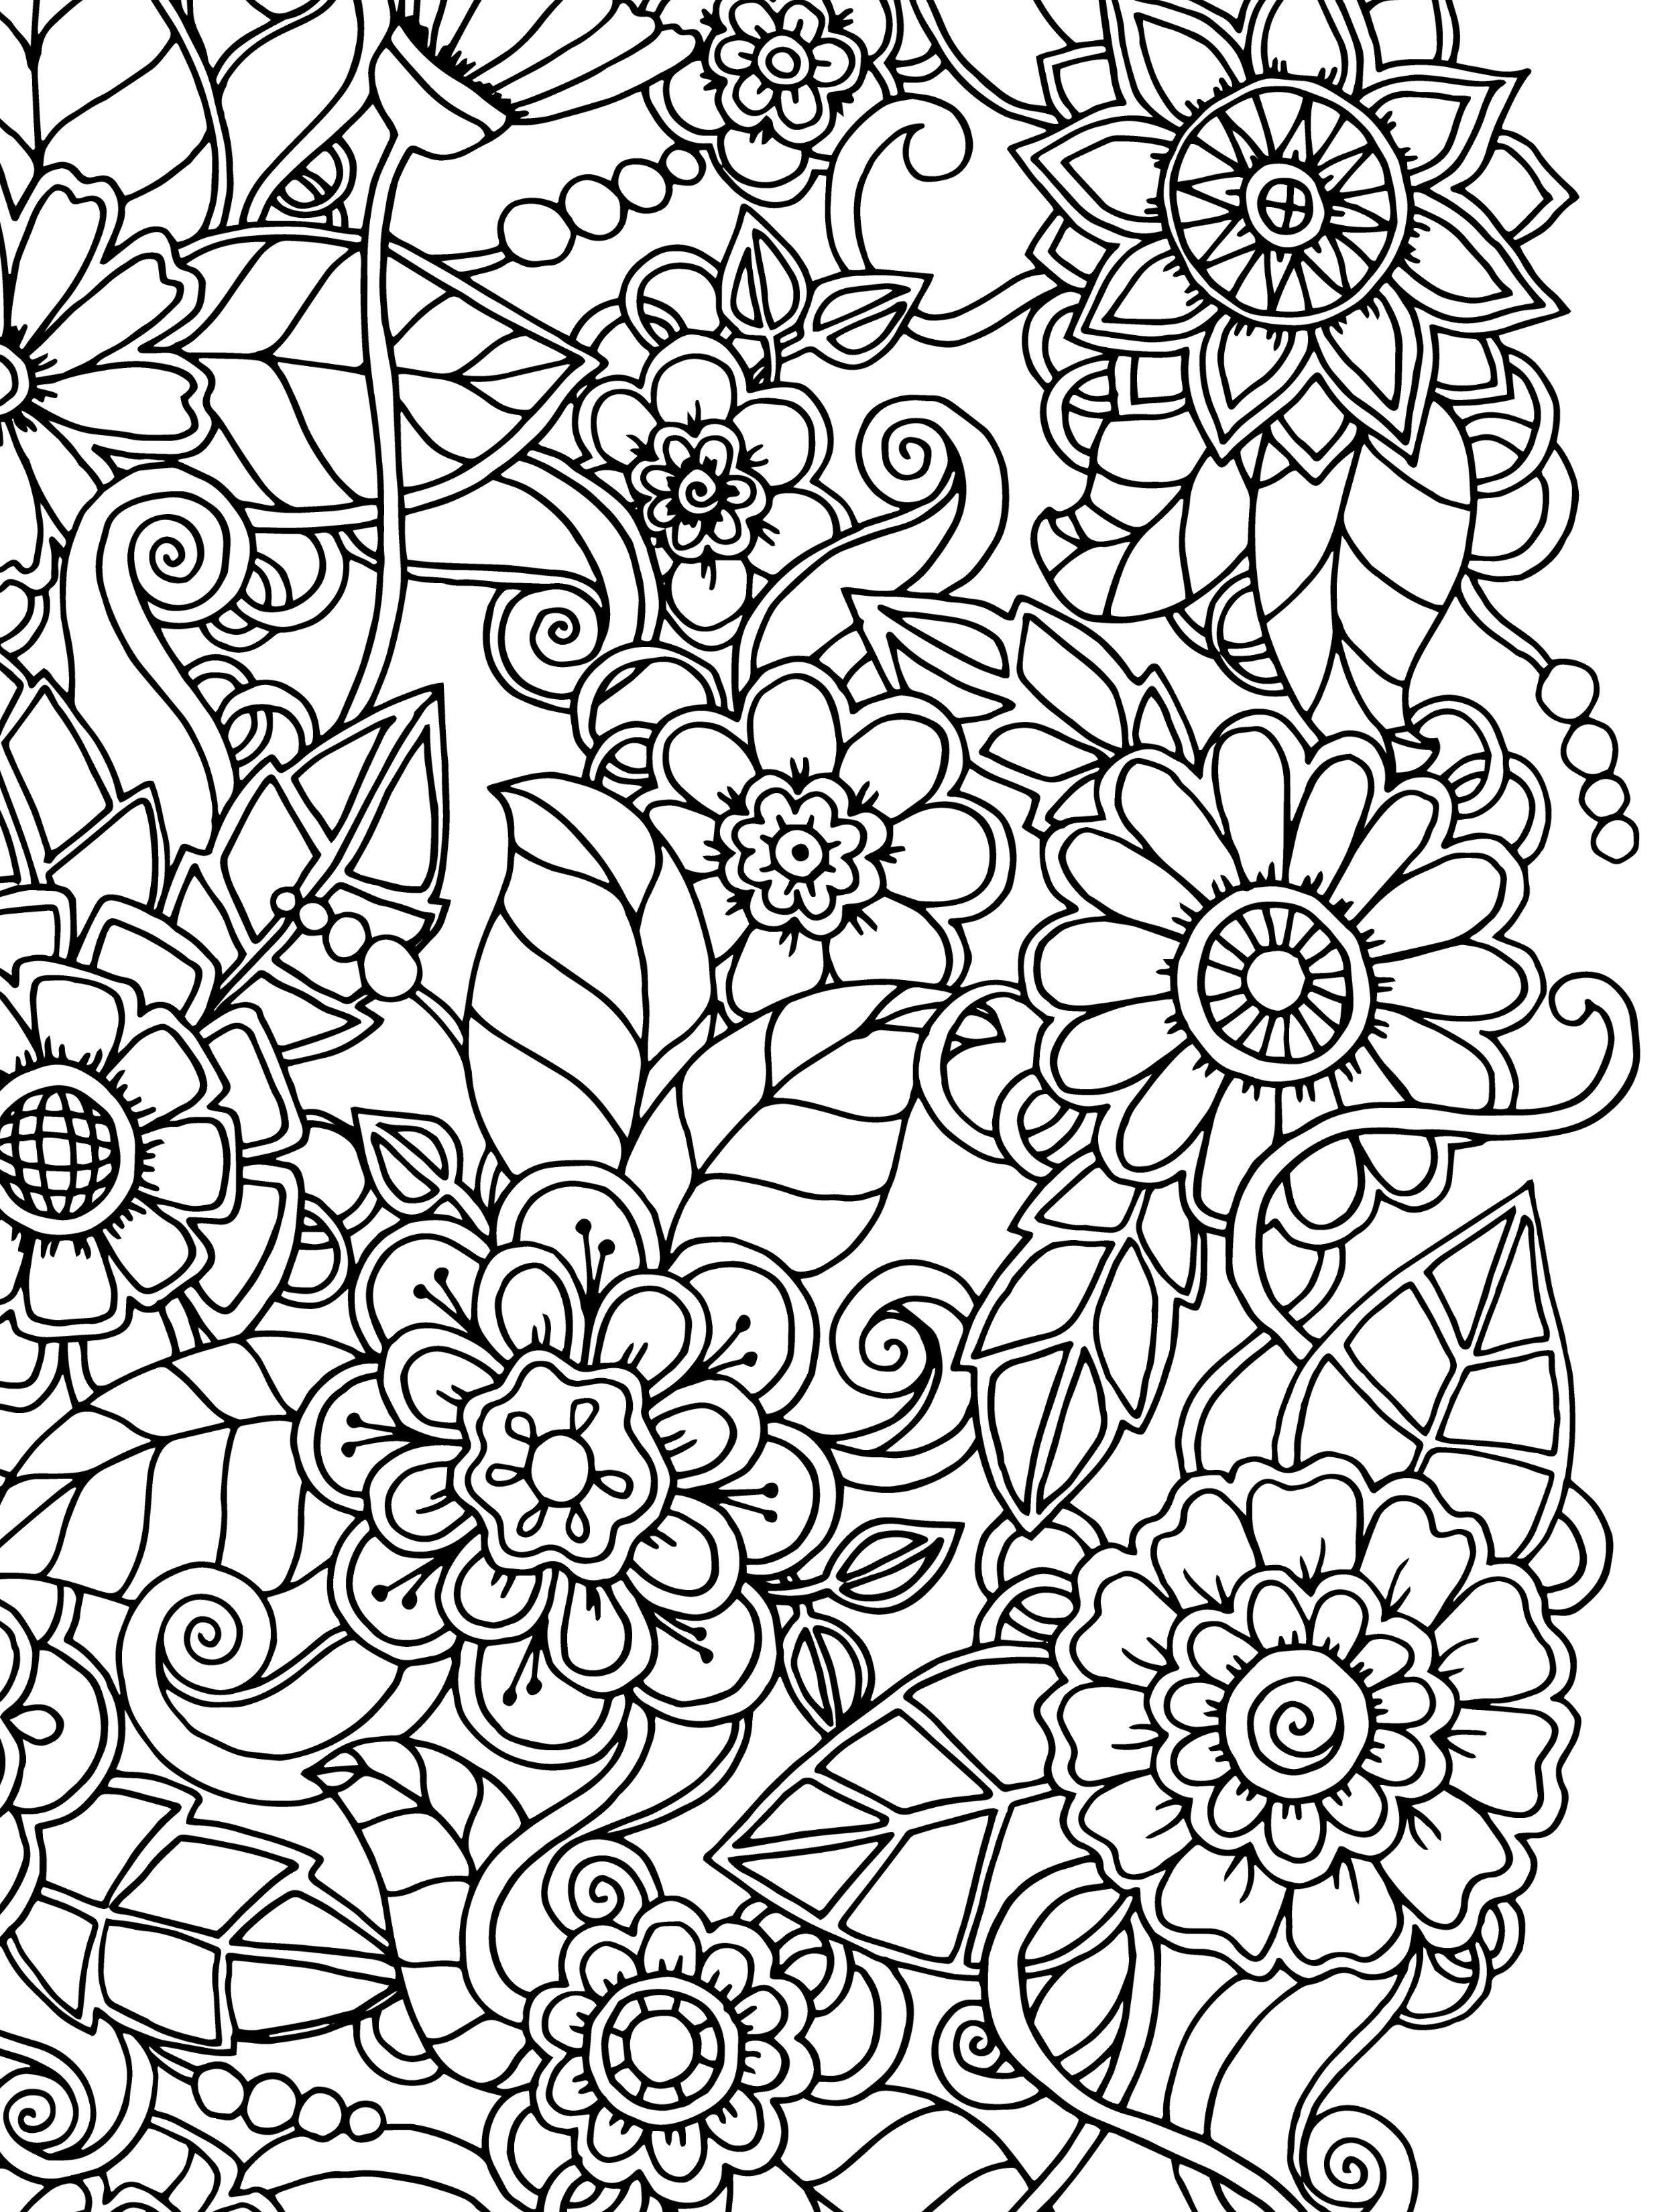 15 Crazy Busy Coloring Pages For Adults Flower Coloring Pages